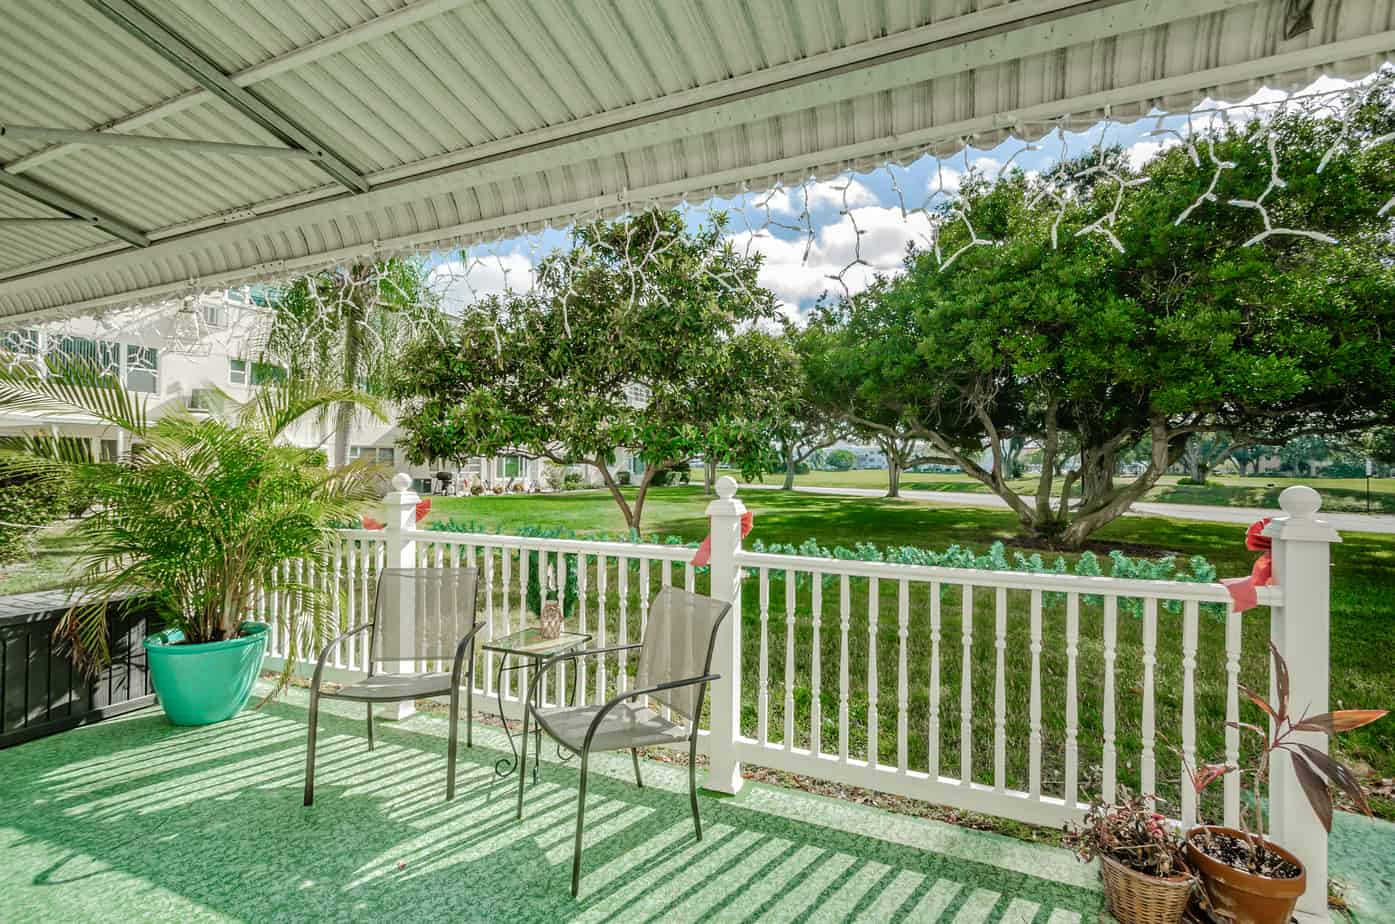 14-2285-Israeli-Dr-#17-Clearwater-Fl-33763-Patio2-2